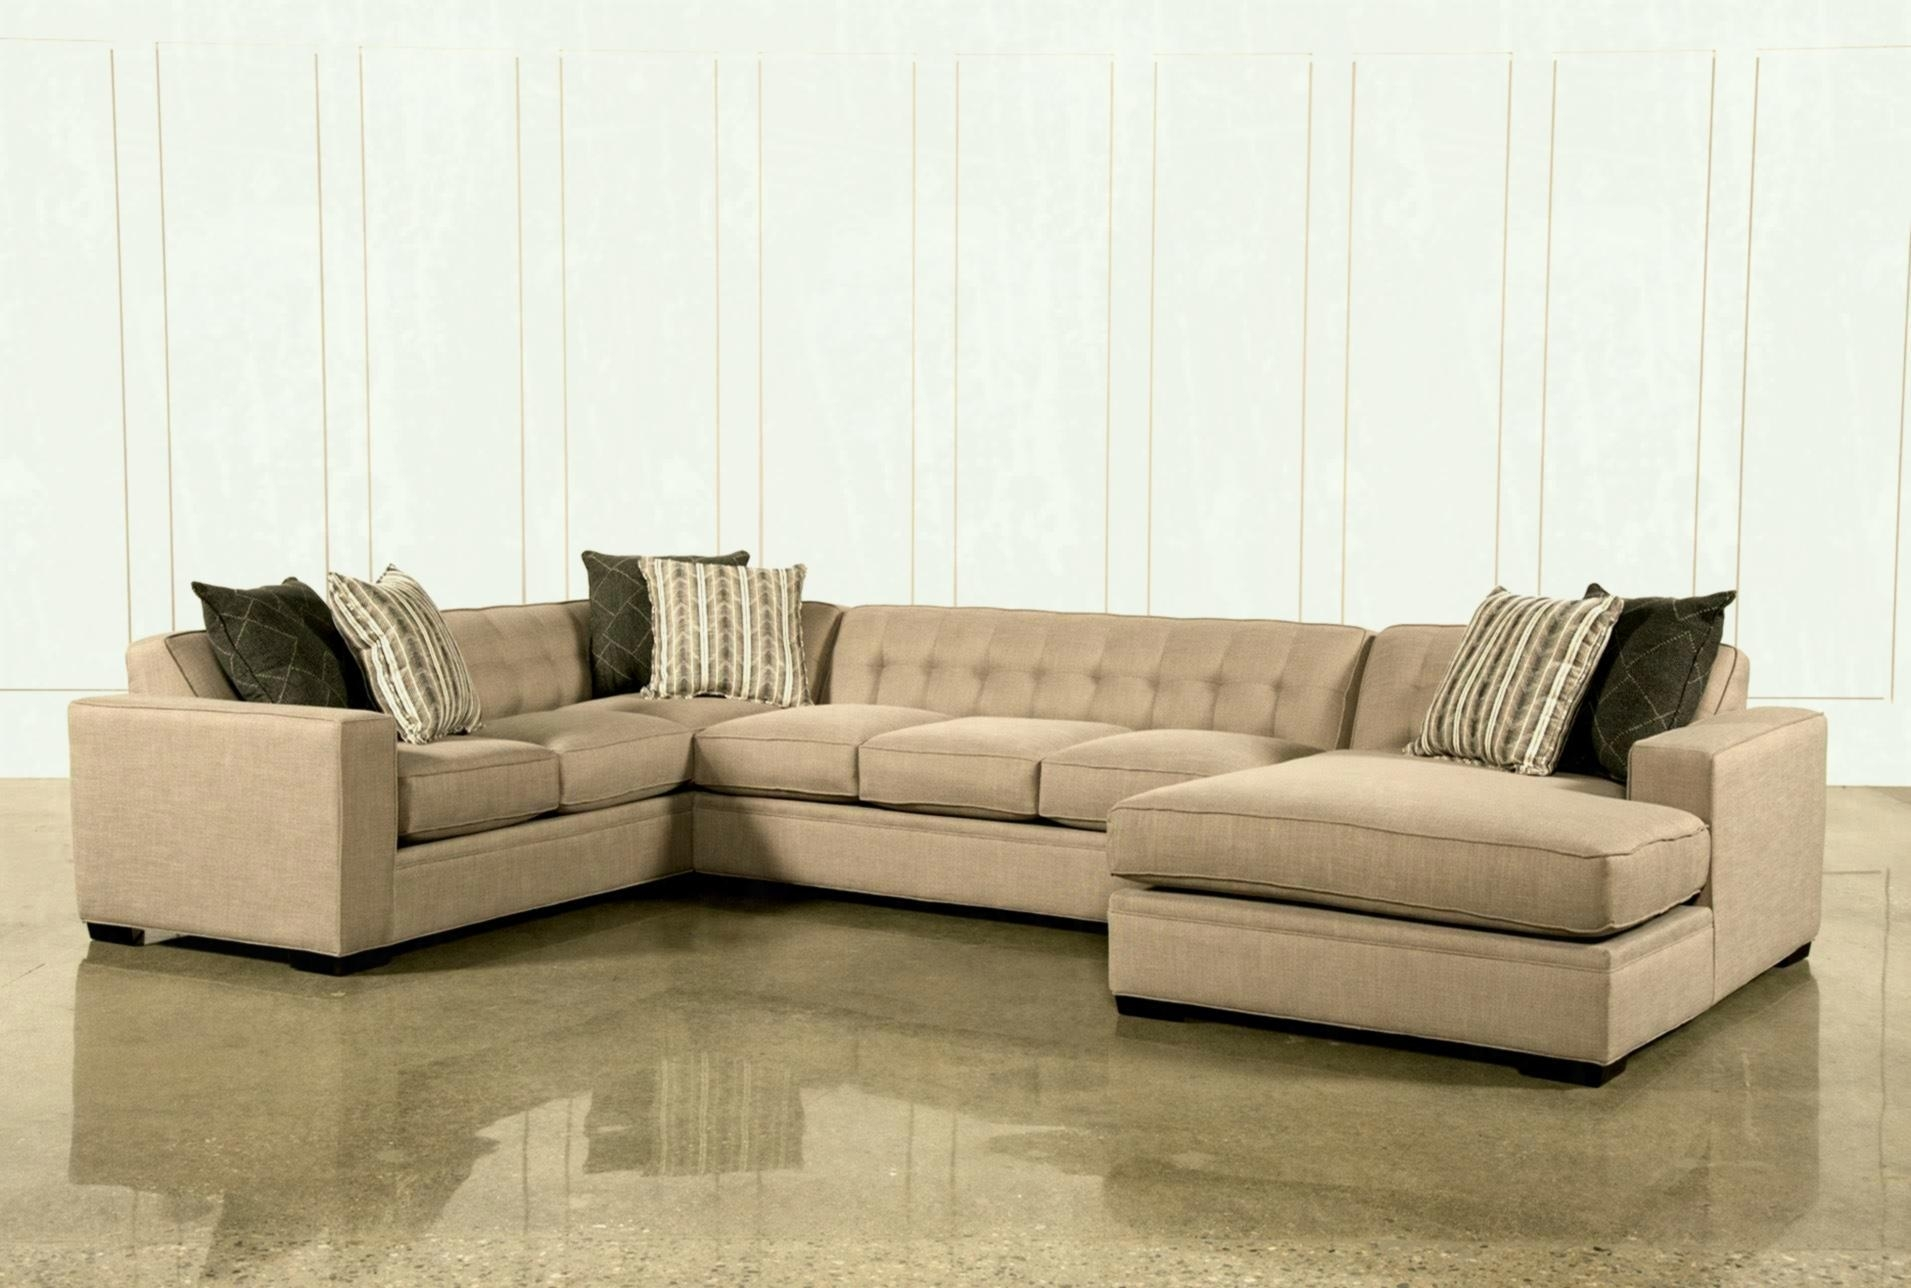 Living Spaces Sectional – Tidex In Sierra Down 3 Piece Sectionals With Laf Chaise (View 18 of 30)